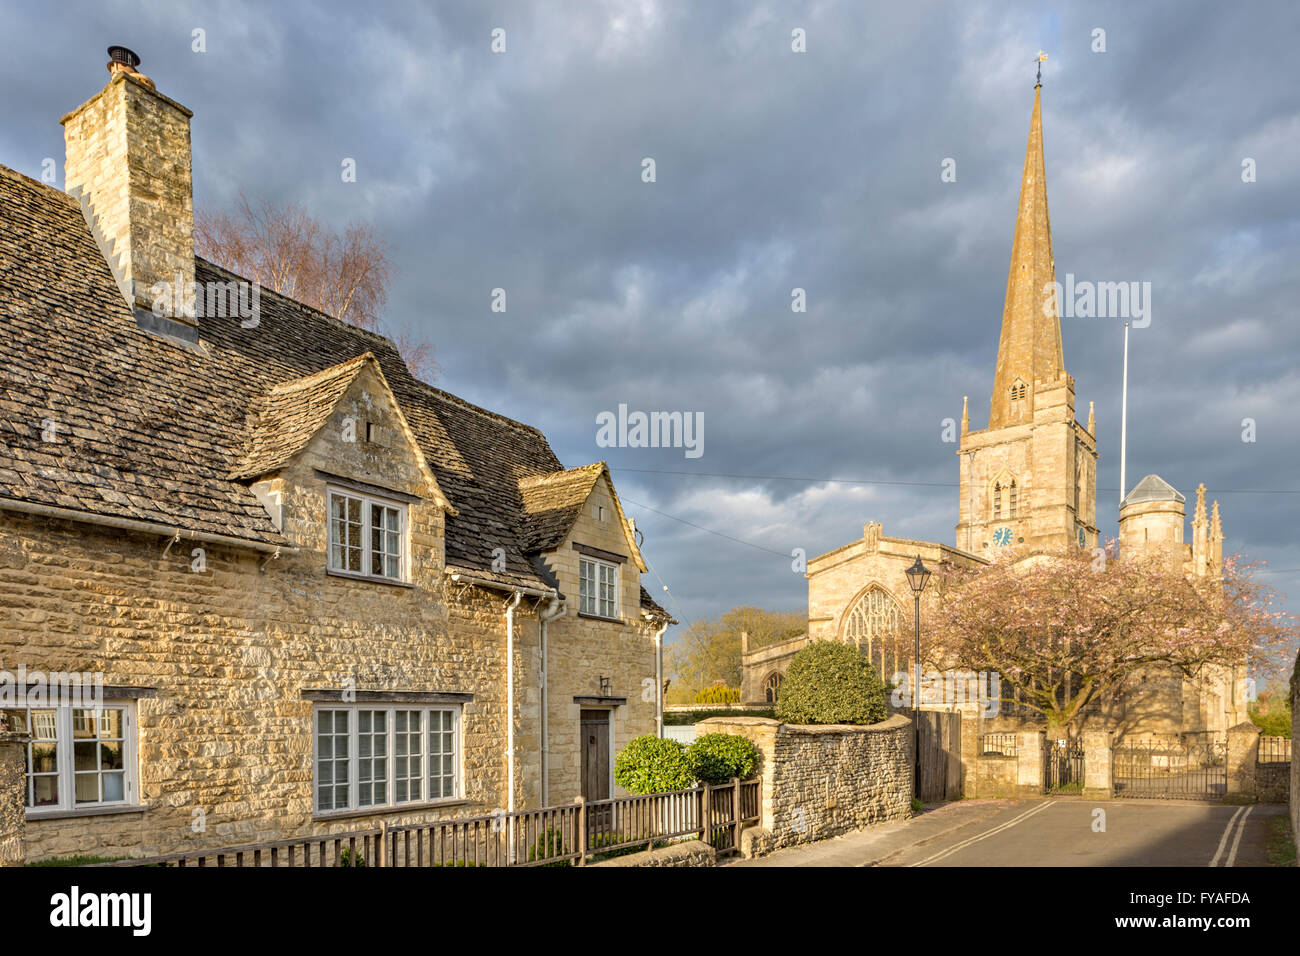 St John the Baptist church in late afternoon light, Burford the Cotswolds, Oxfordshire, England, UK - Stock Image